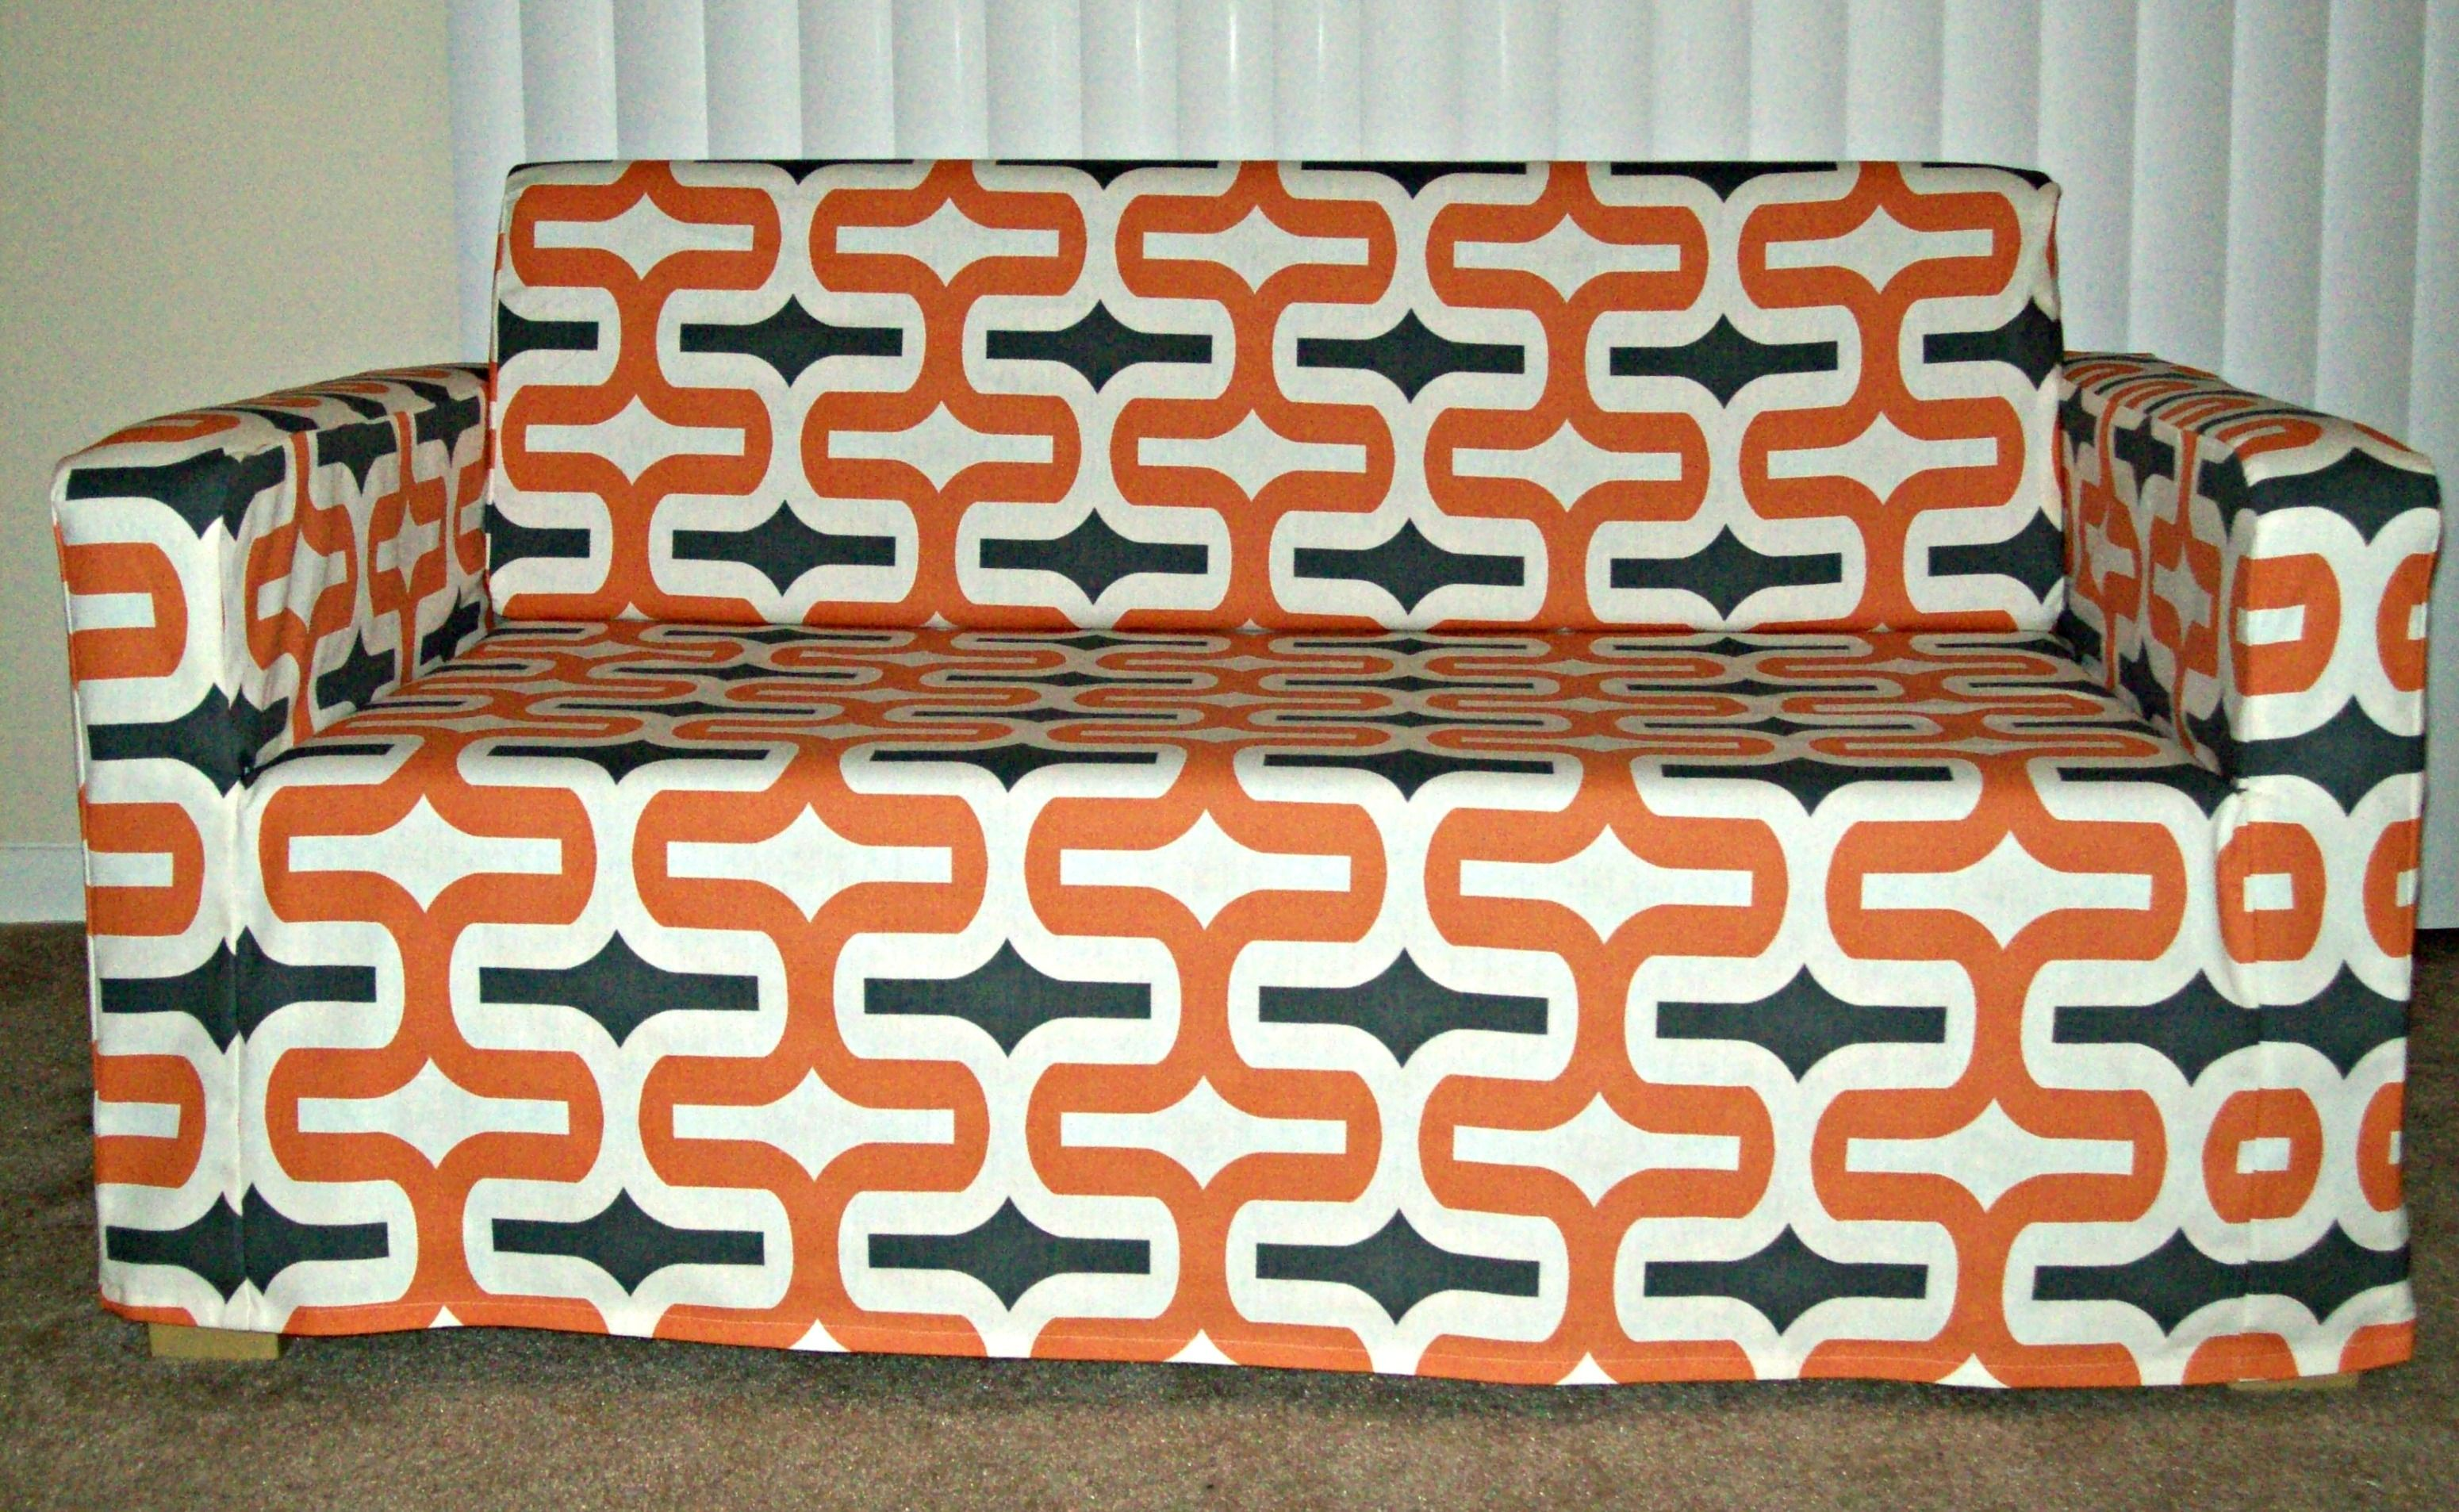 Superb Custom Cover Made By Roozimsy.com For The IKEA Solsta Sofa Bed In Embrace  Apache Macon Fabric Pattern.